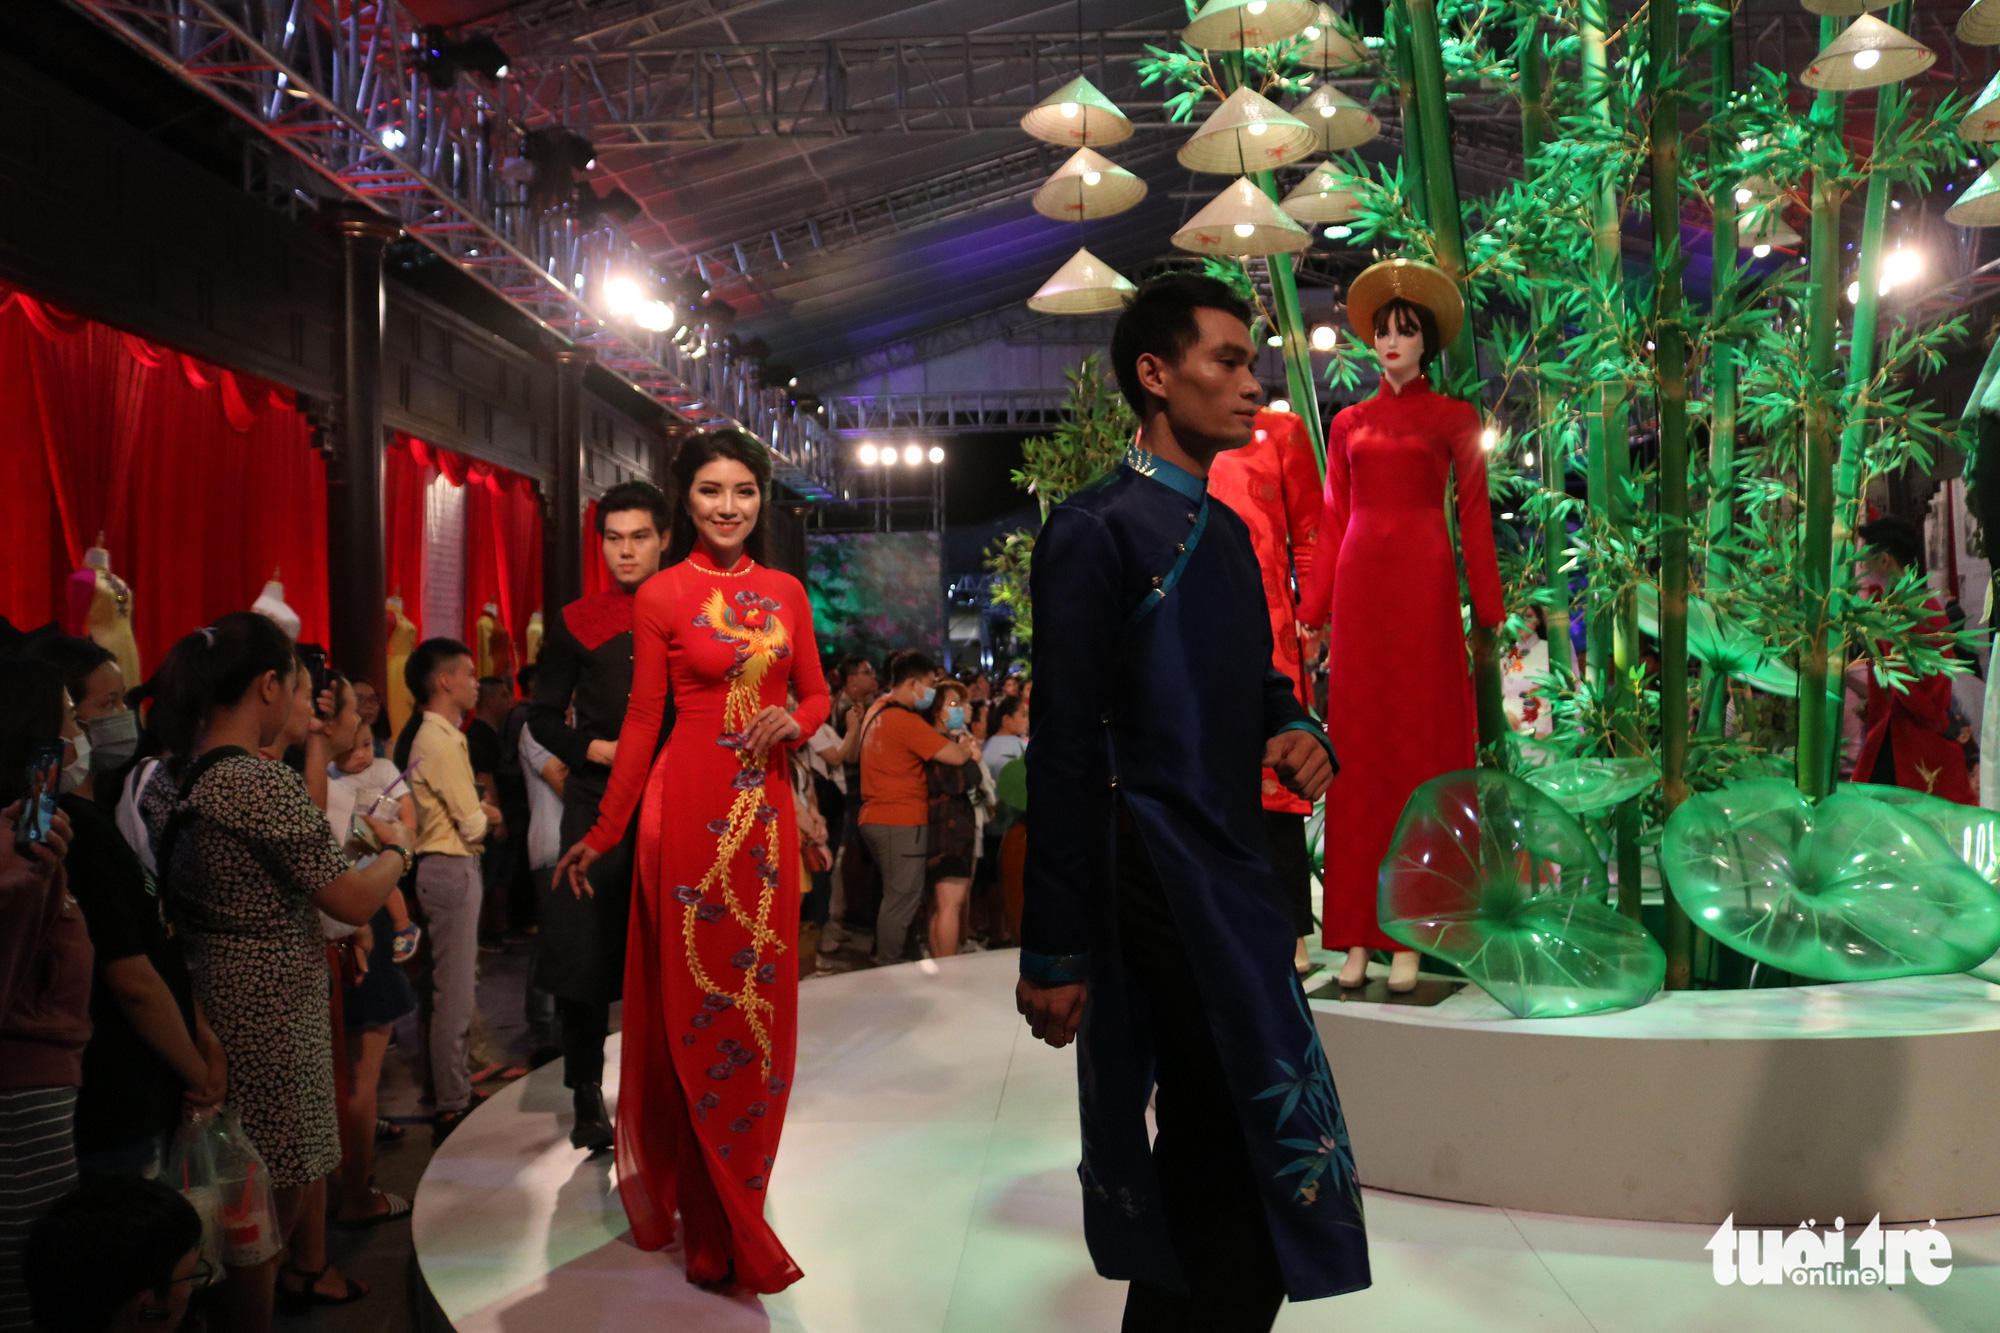 A fashion show takes place during the opening event of the 2020 Ho Chi Minh City Ao Dai Festival at Nguyen Hue Walking Street, Ho Chi Minh City, June 27, 2020. Photo: Ngoc Phuong / Tuoi Tre